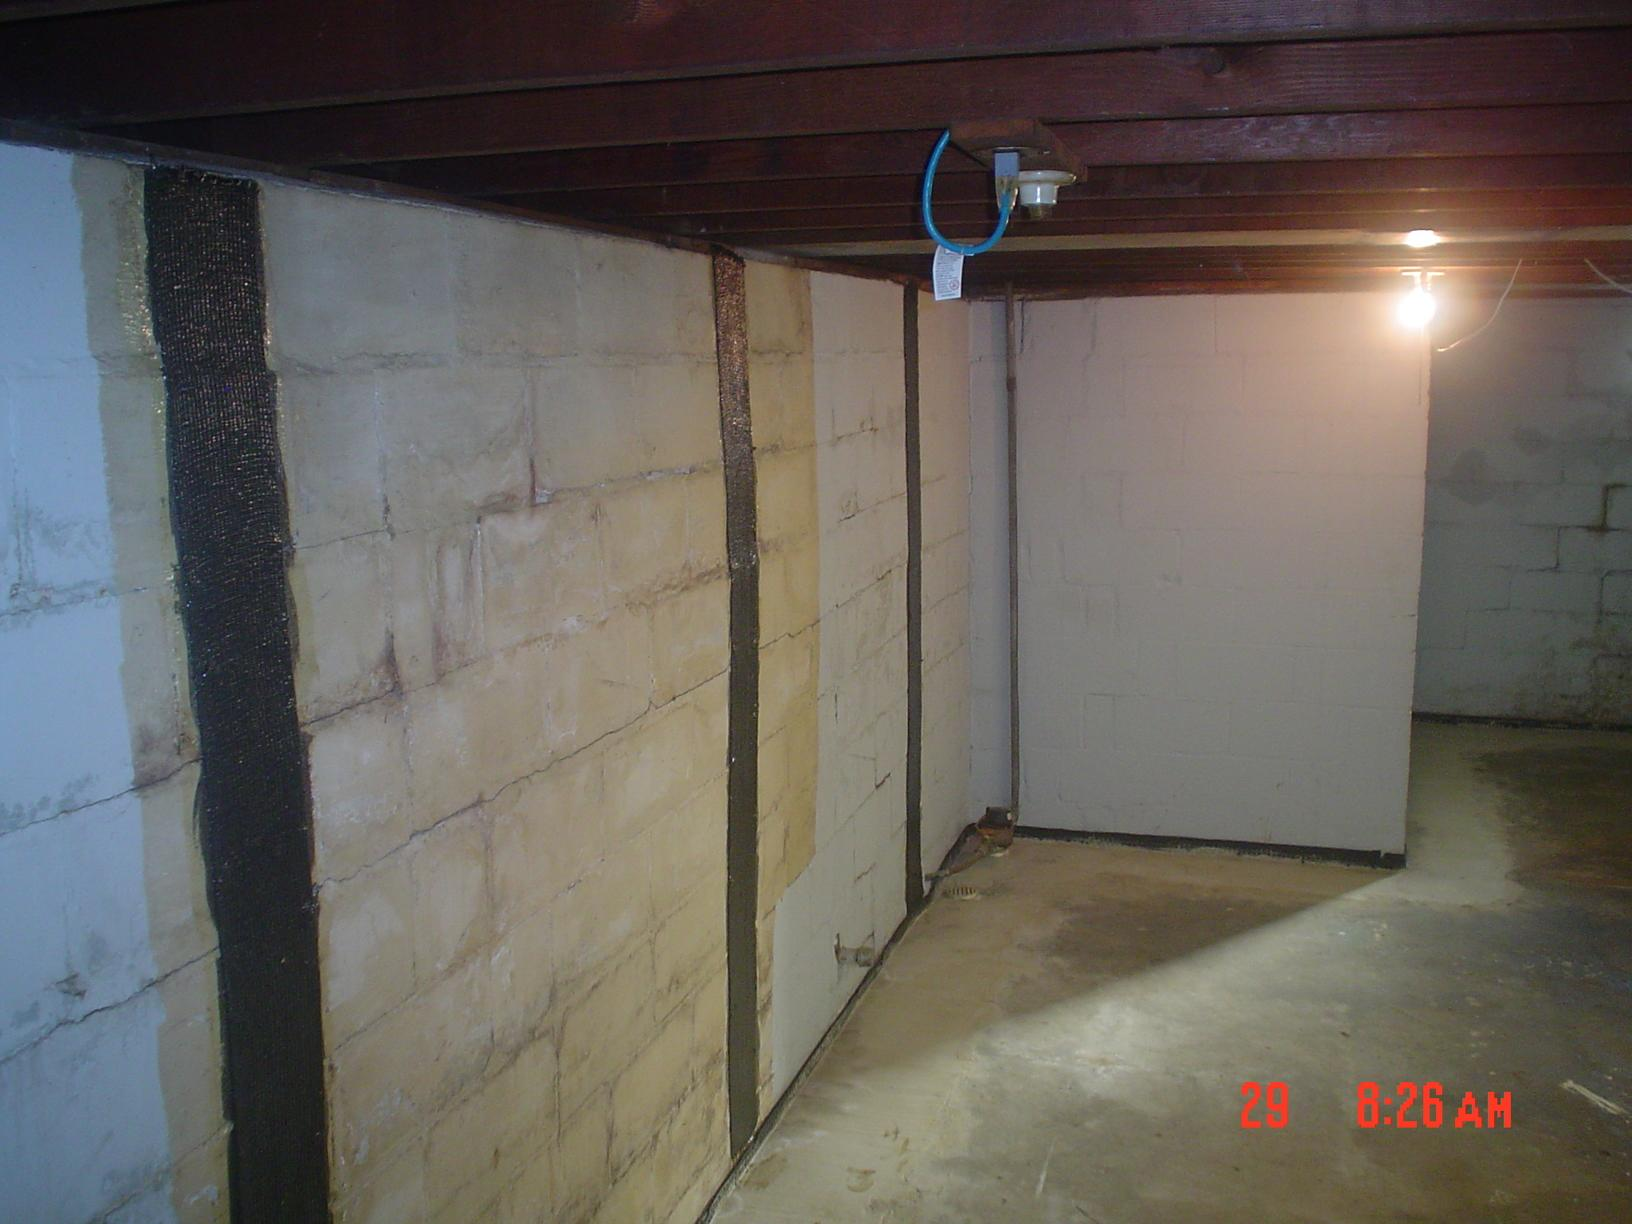 CarbonArmor wall straps fulled installed on foundation walls to prevent further bowing.